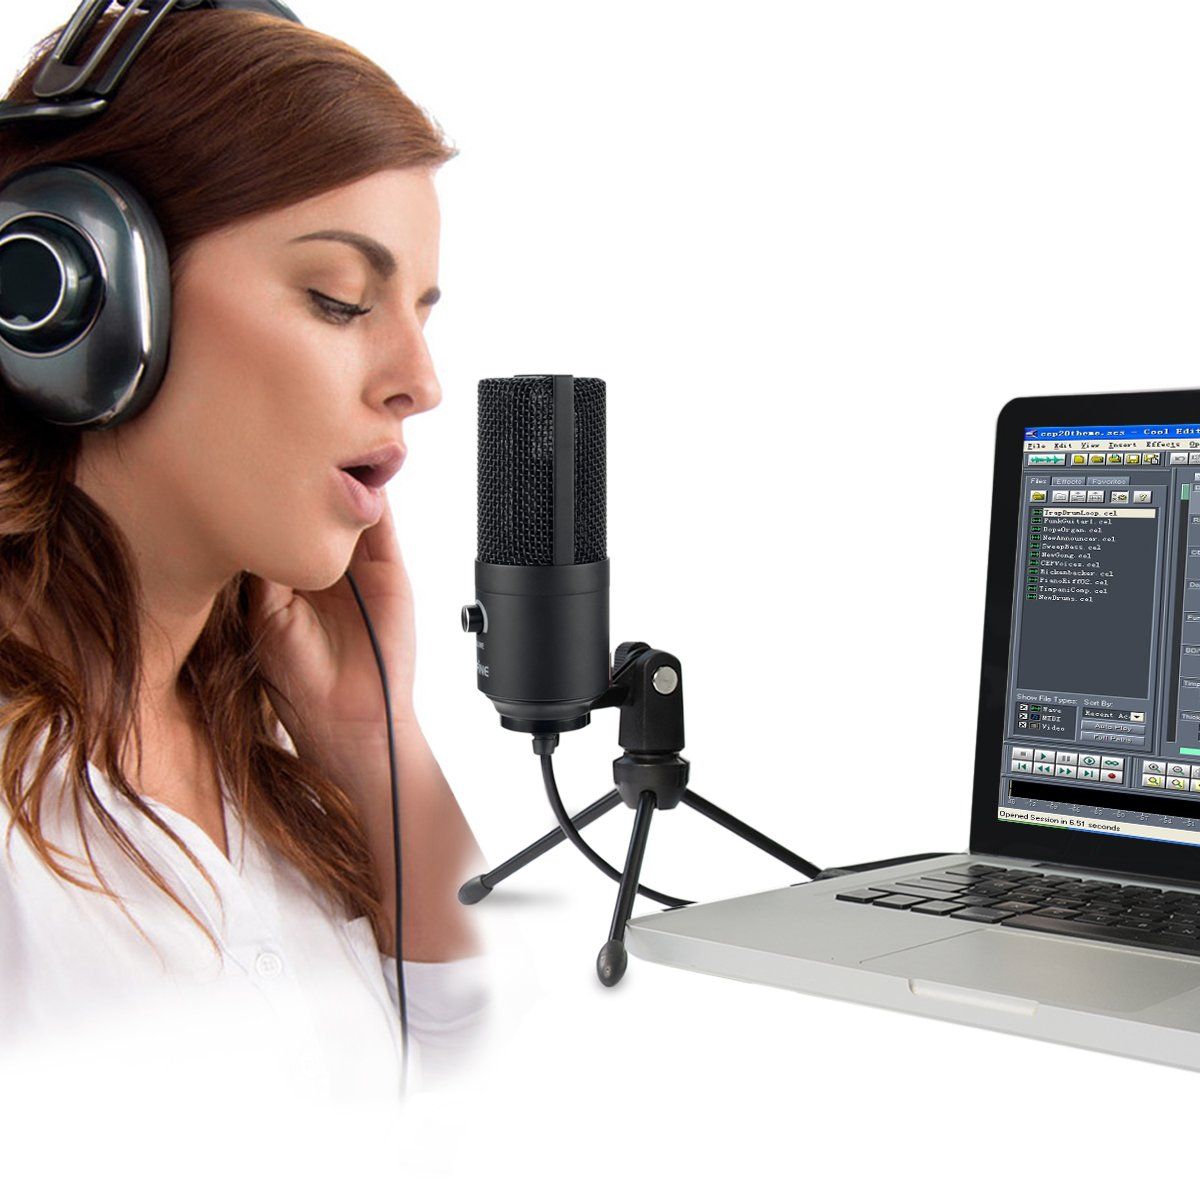 galleon usb microphone fifine metal condenser recording microphone for laptop mac or windows. Black Bedroom Furniture Sets. Home Design Ideas